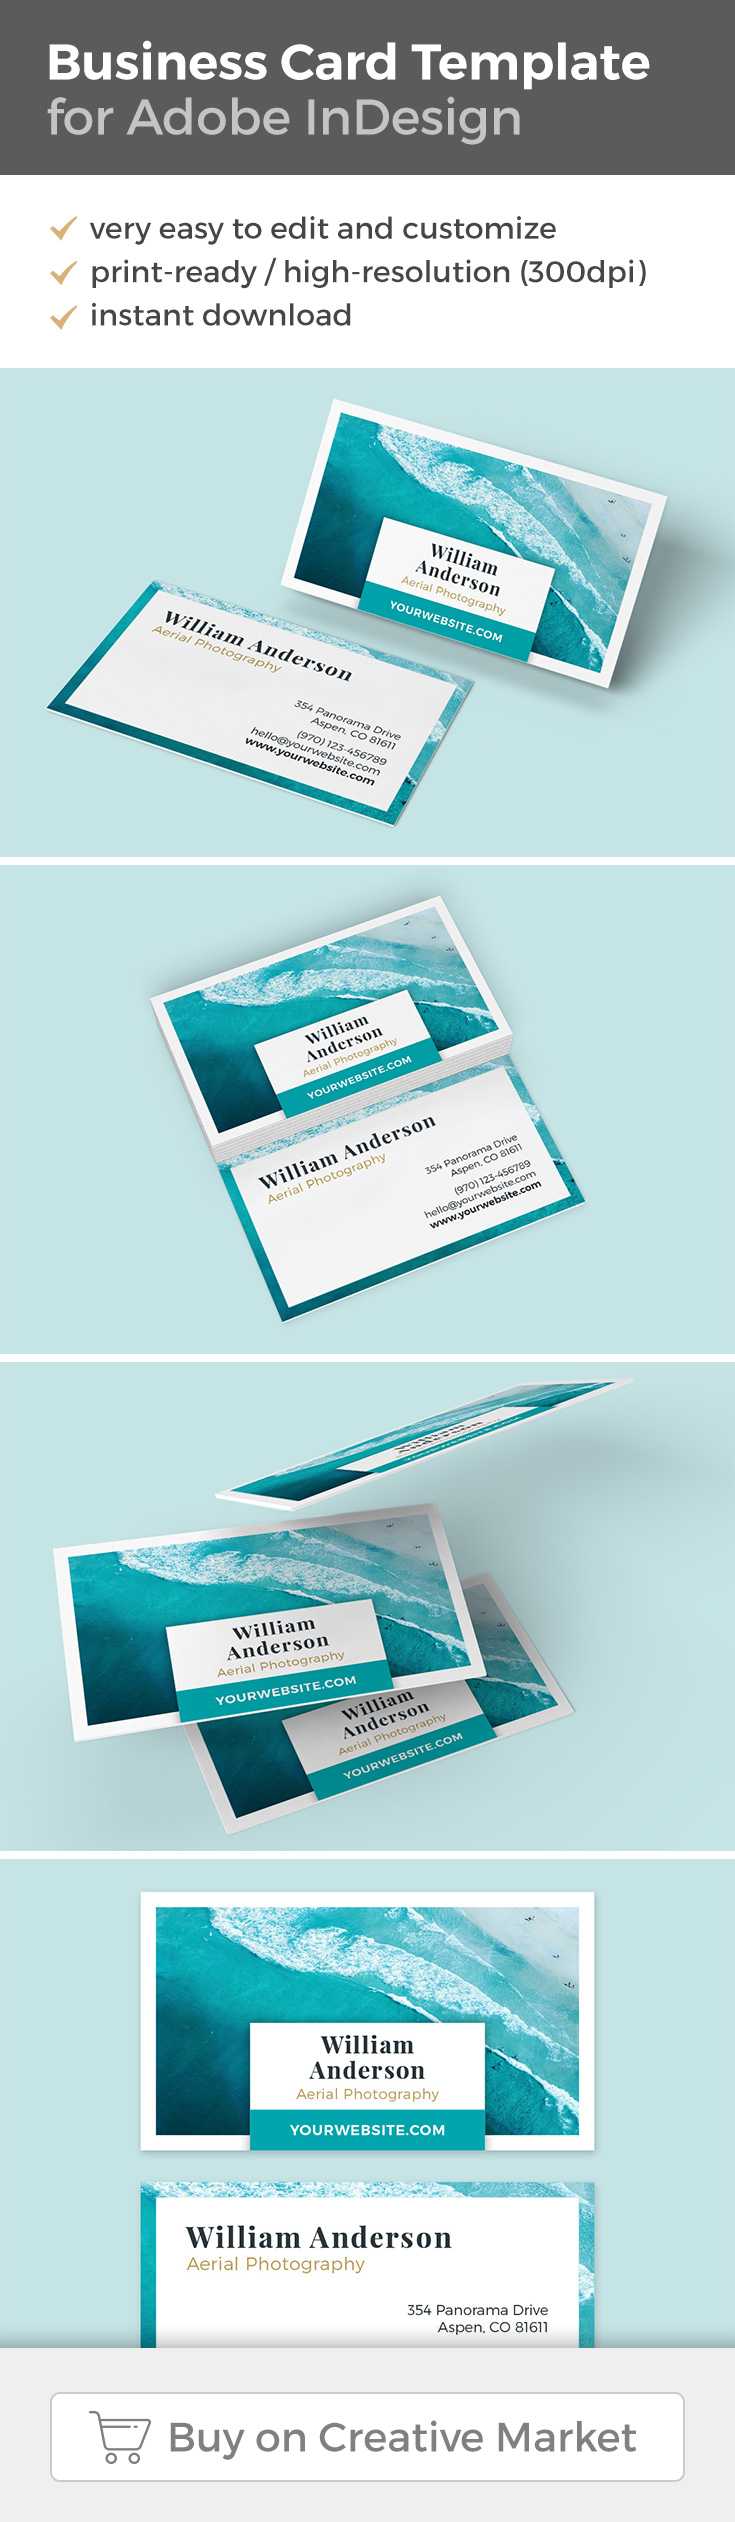 Beautiful business card template for adobe indesign with an ocean beautiful business card template for adobe indesign with an ocean theme wajeb Choice Image